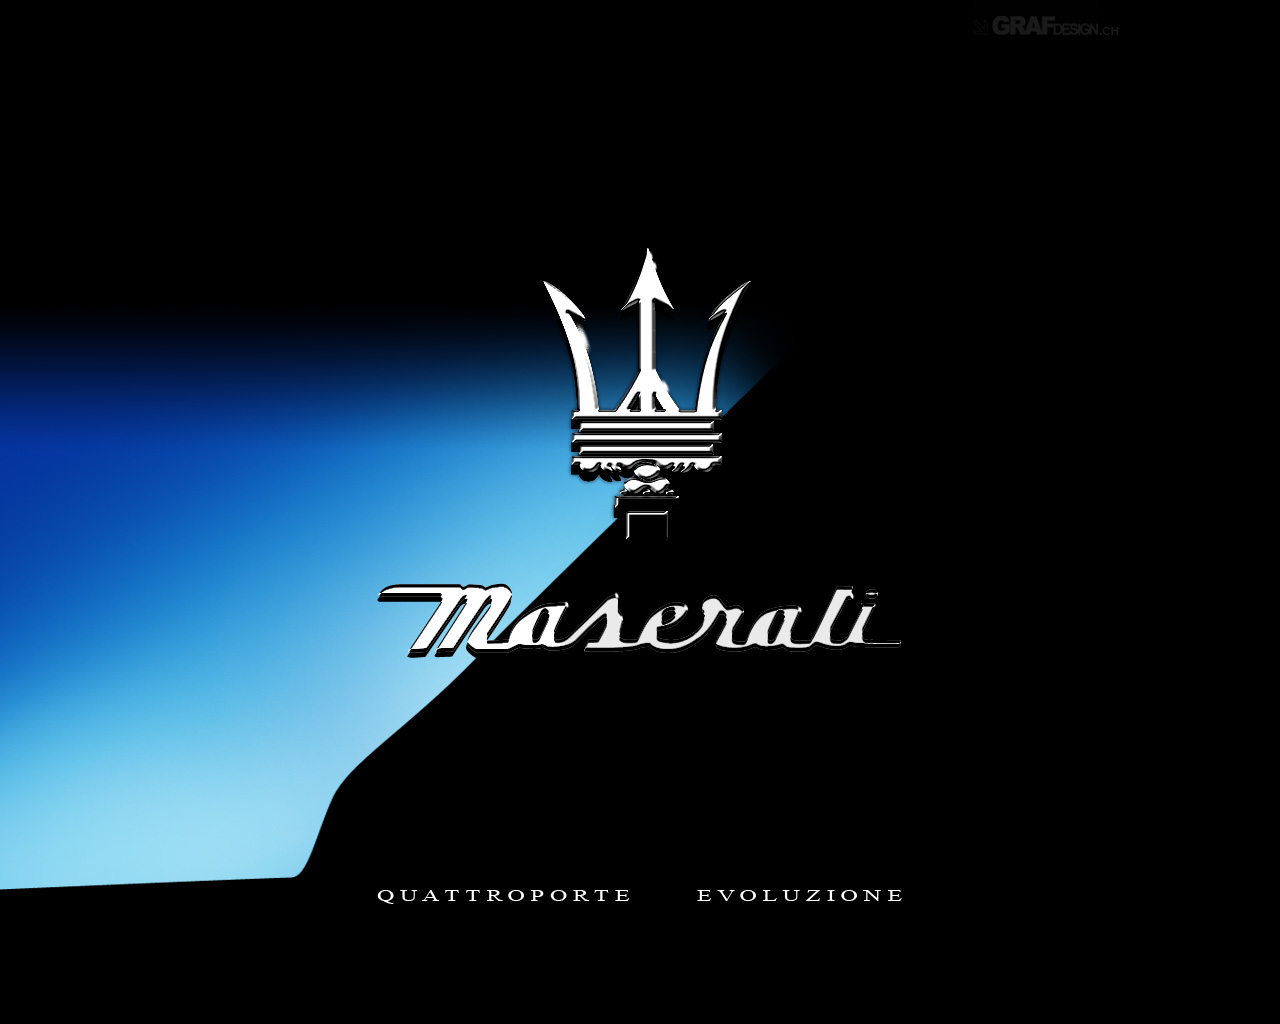 maserati granturismo logo with Msi Hd Wallpaper on Maserati Interior furthermore 261470534107 furthermore Female Cheetah Warrior furthermore Fiore D Any Finish 106159821 also 16 Sports Cars And Supercars To Look Forward To In 2016.